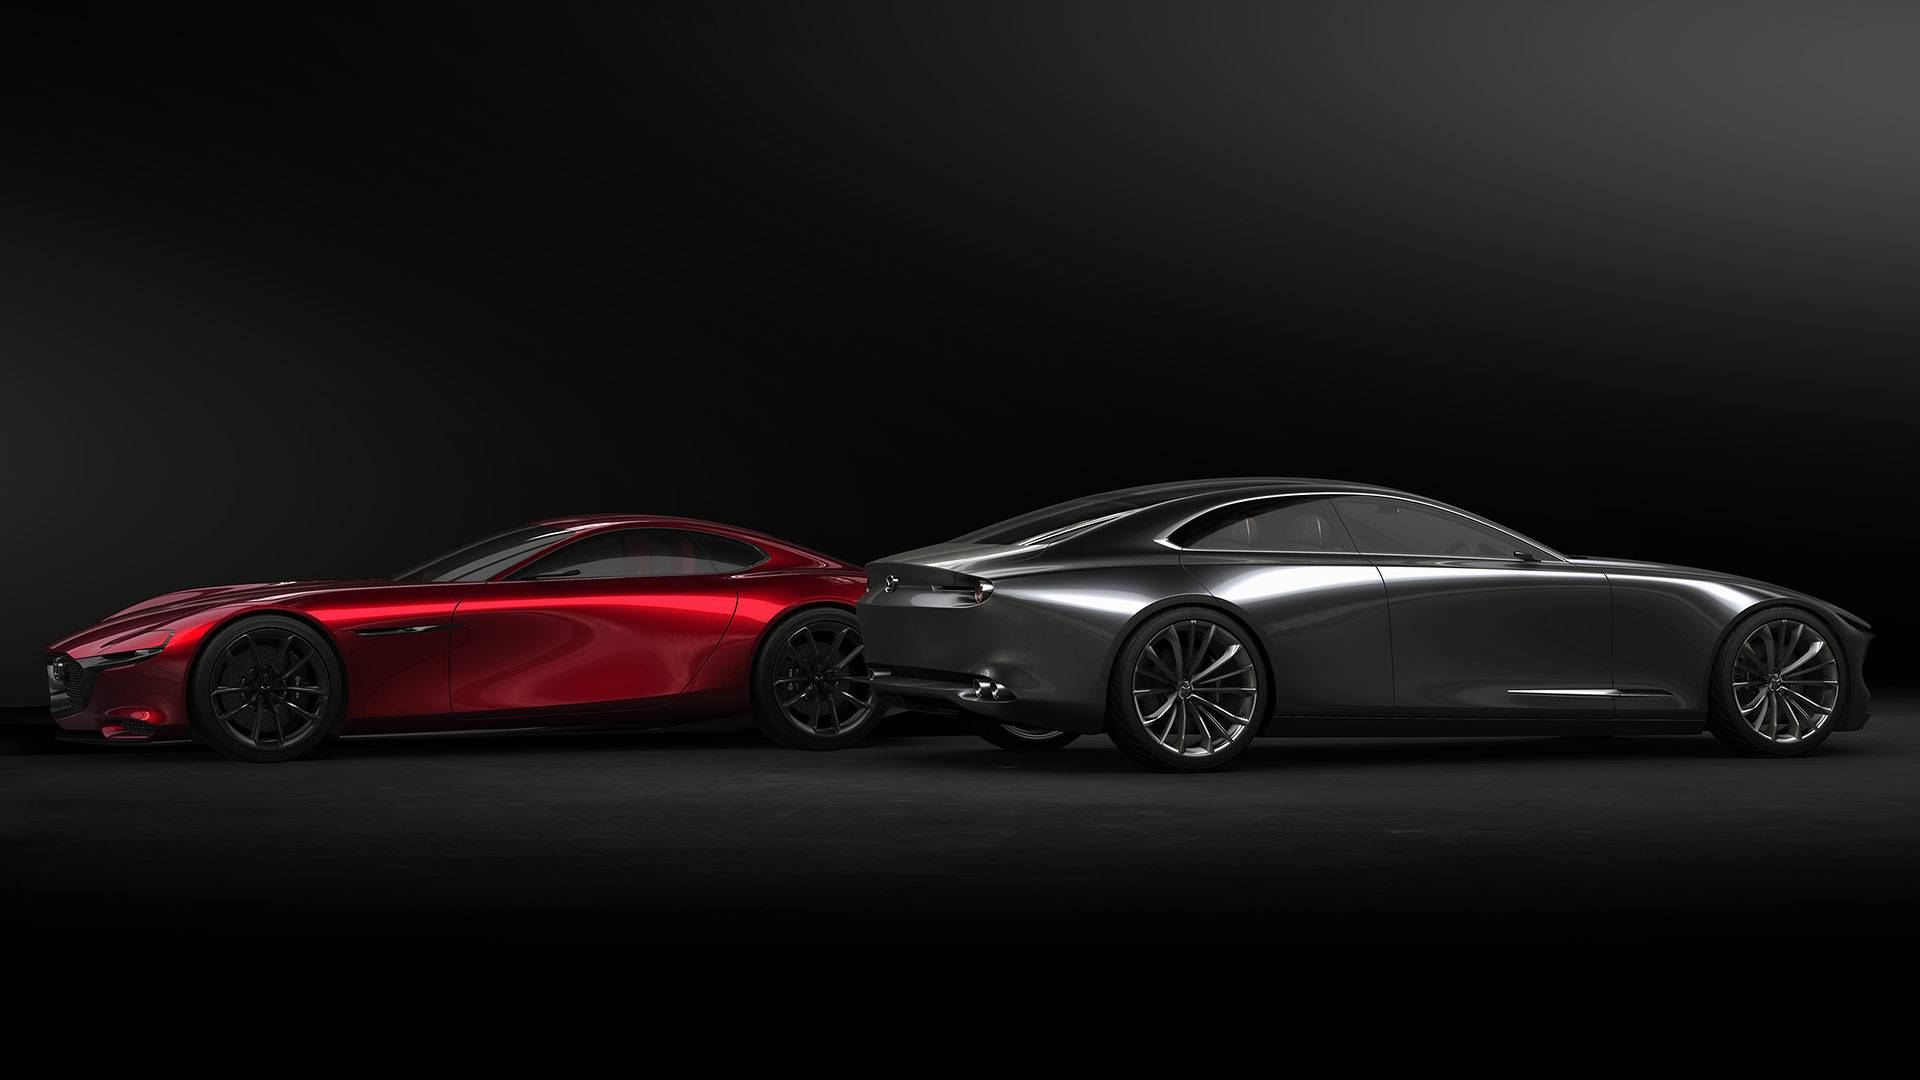 mazda vision coupe concept takes kodo soul of motion design to